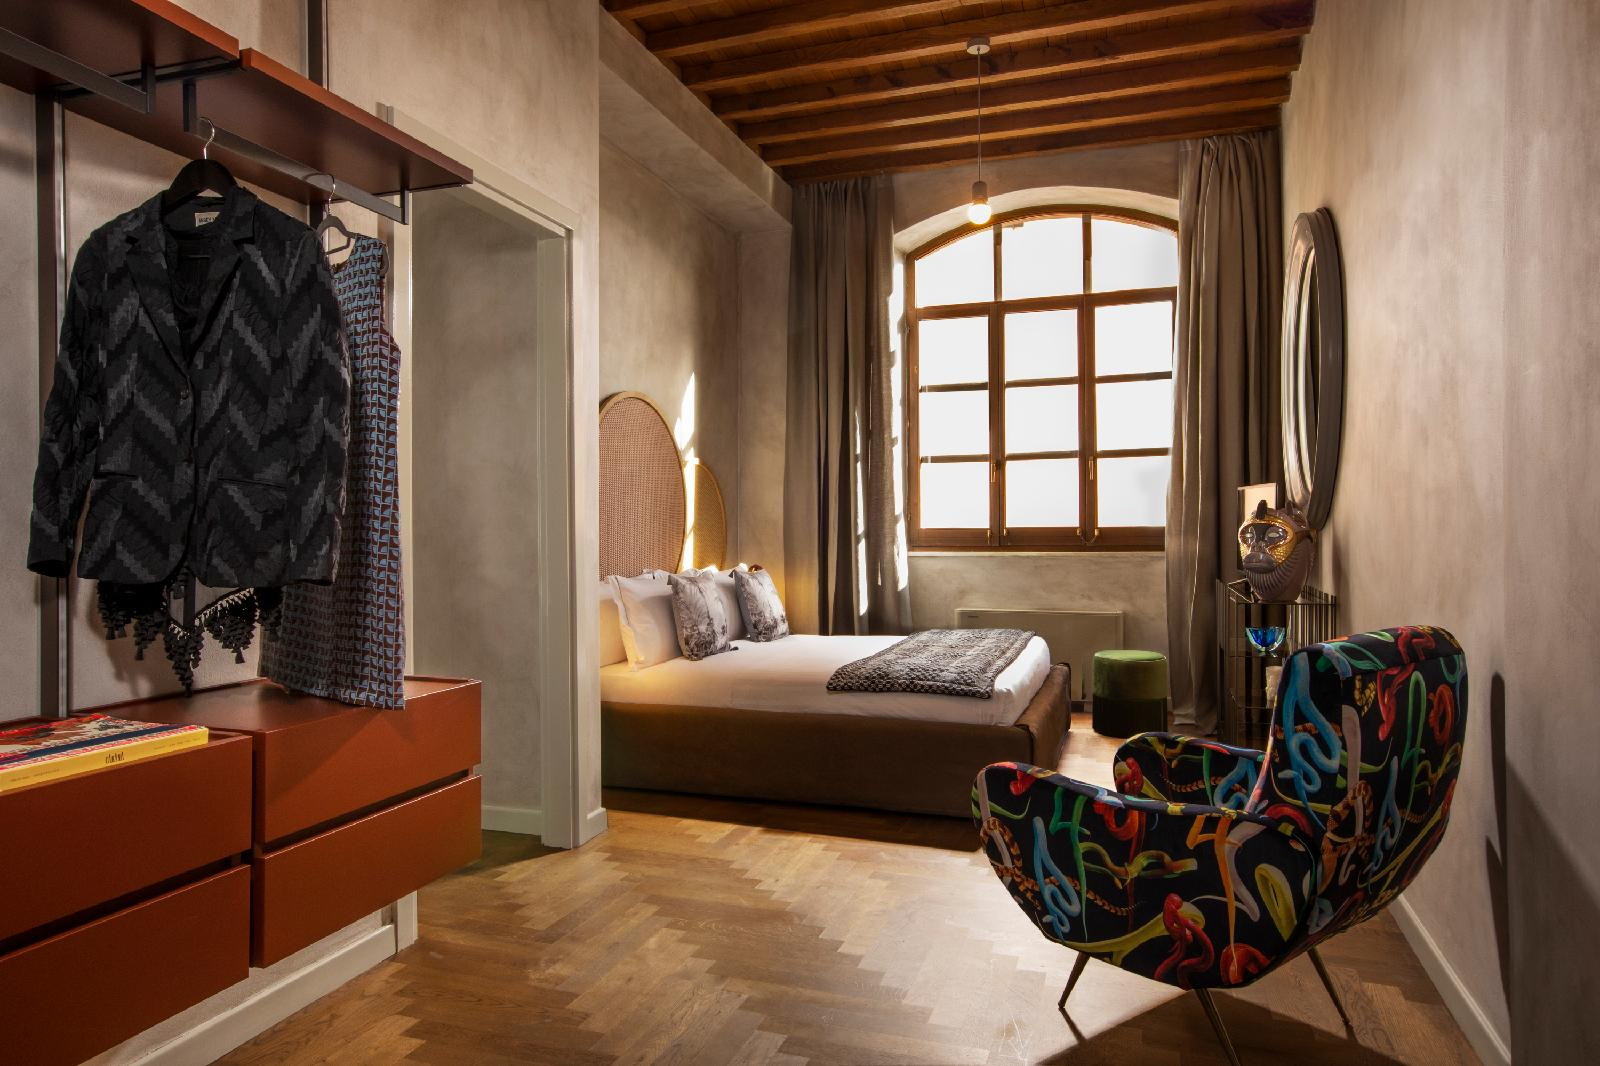 Palm Suites - Small Luxury Hotels Of The World, Rome Image 2